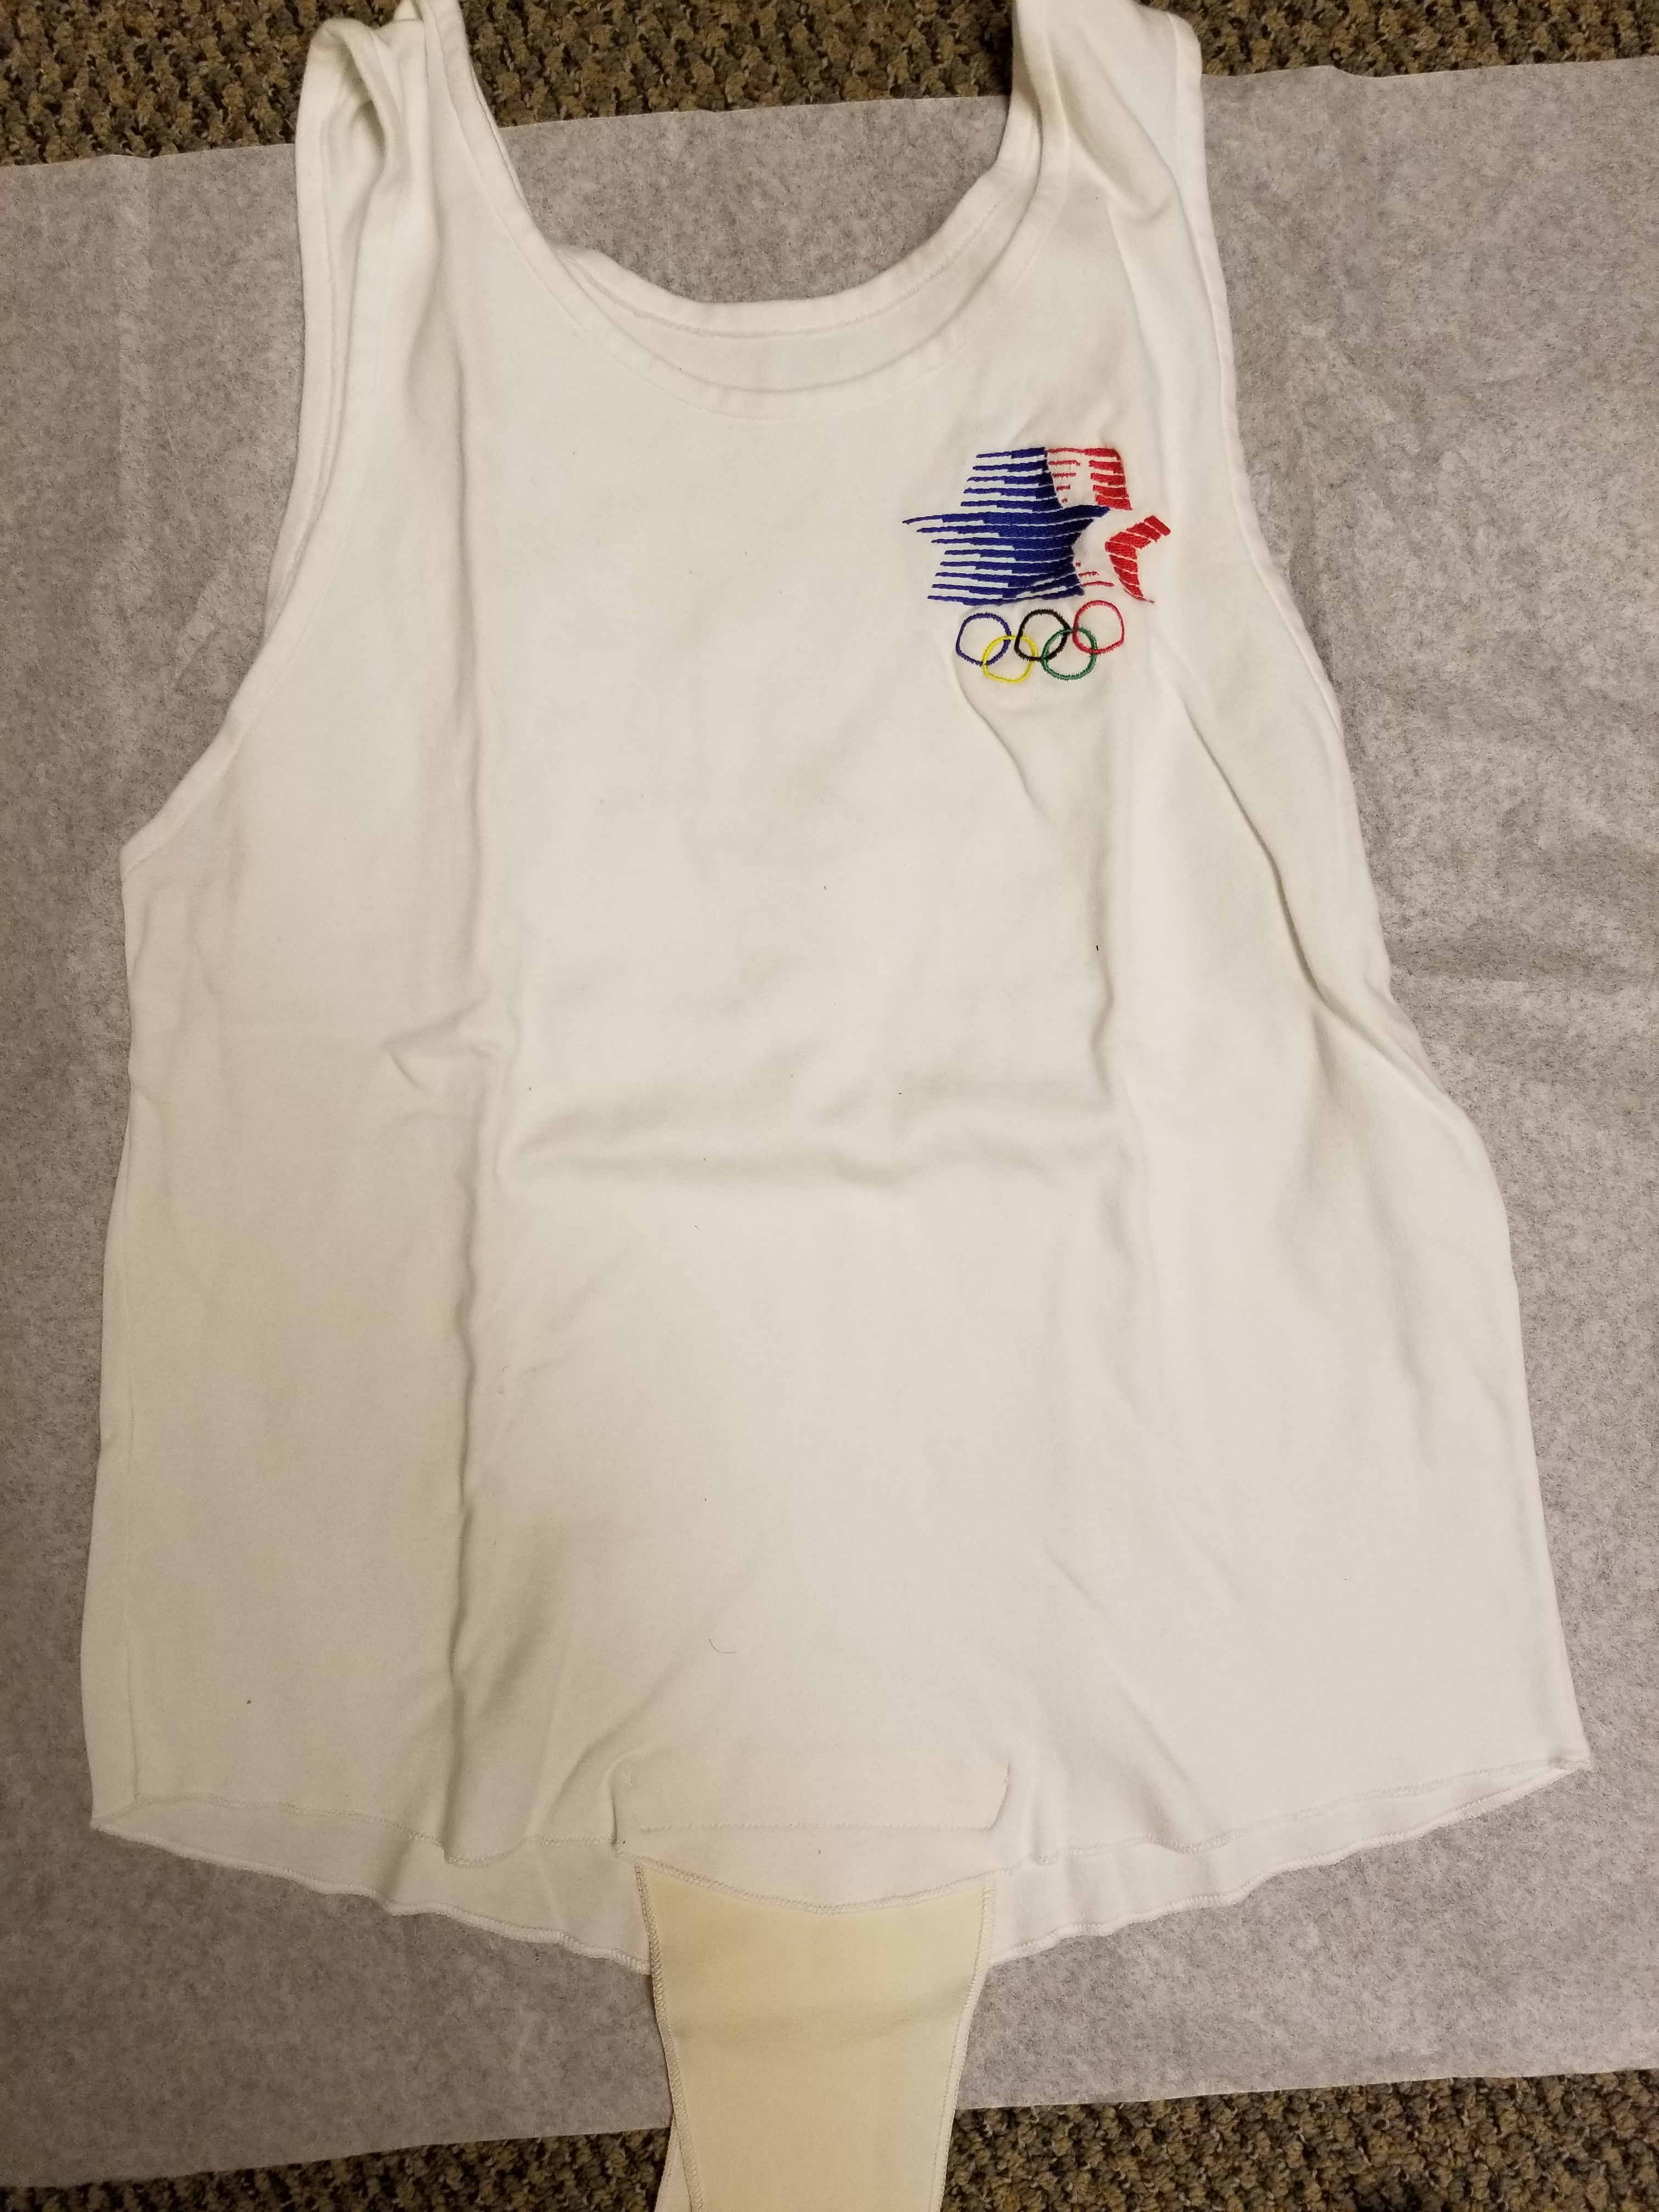 2623287d The tank top Rafer wore when he lit the Olympic Torch at the 1984 Olympic  Games